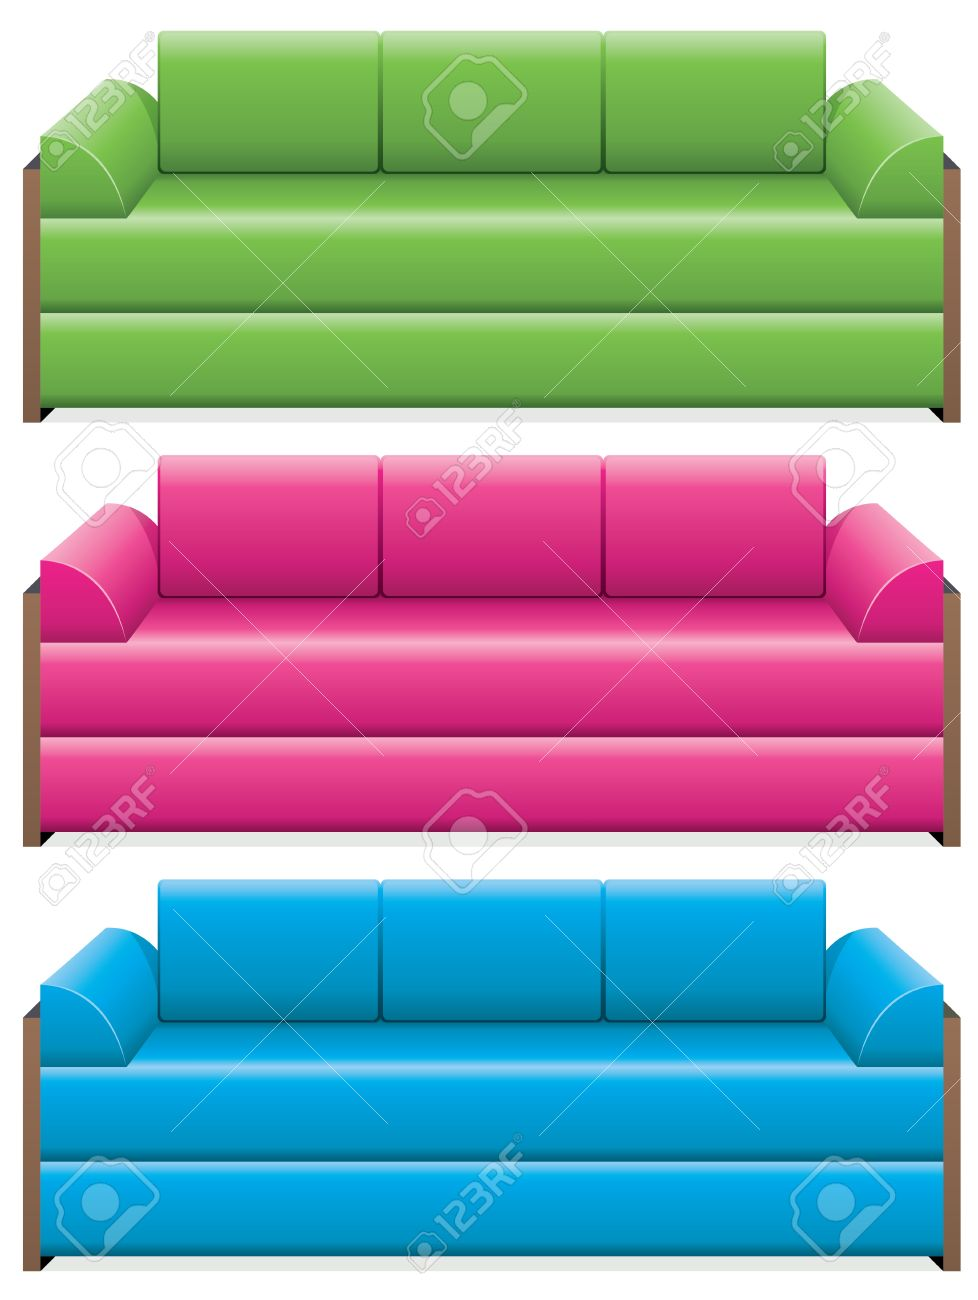 Vector Set Of Colorful Sofas Royalty Free Cliparts Vectors And